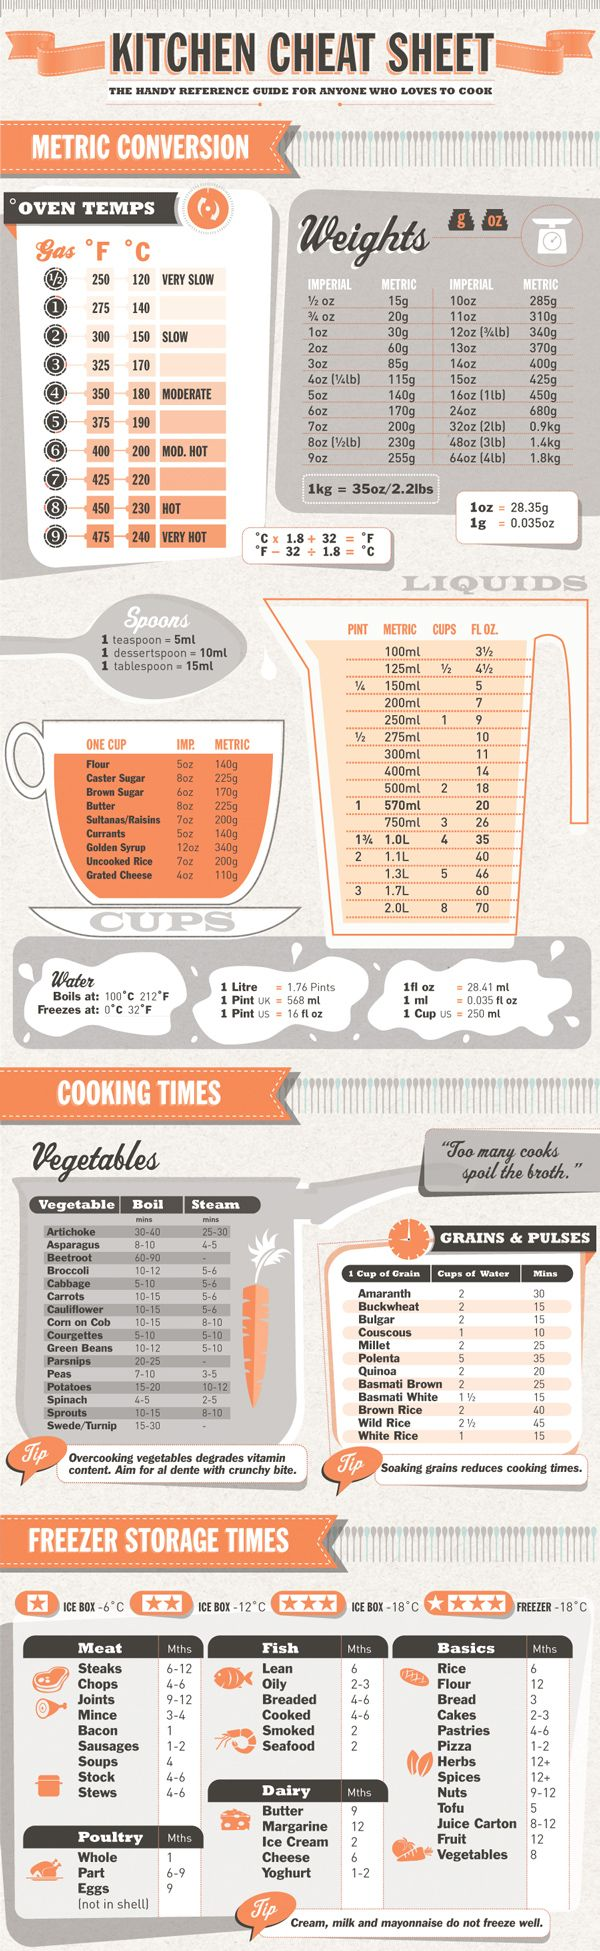 Metric equivalents for cooking and baking. By volume, weight or measure.